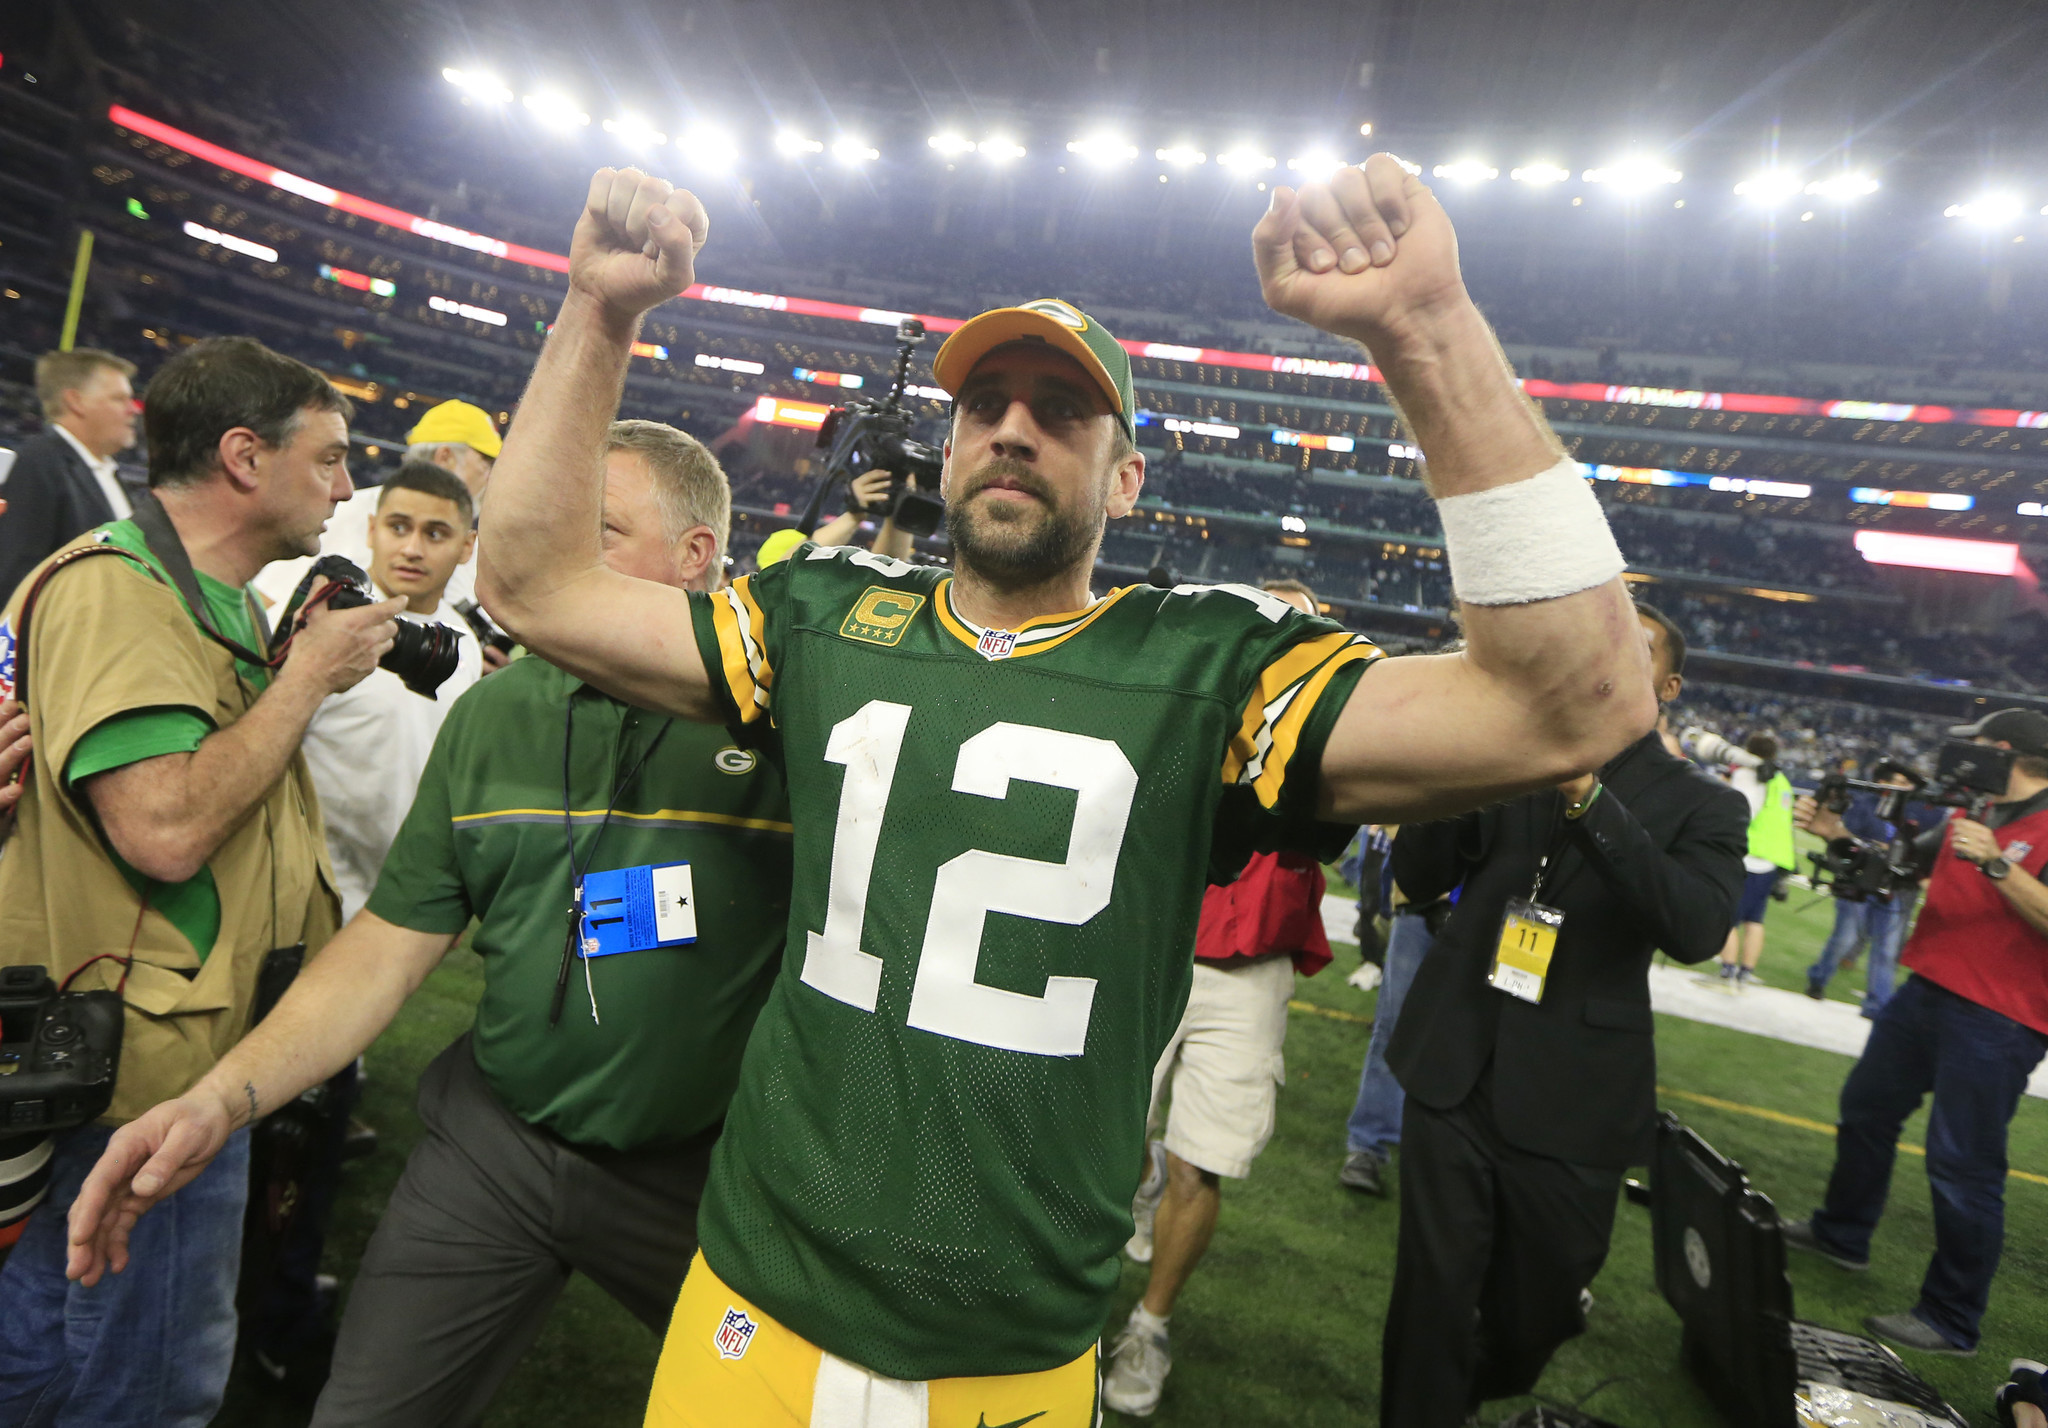 Ct-aaron-rodgers-championship-quarterbacks-haugh-spt-0122-20170121